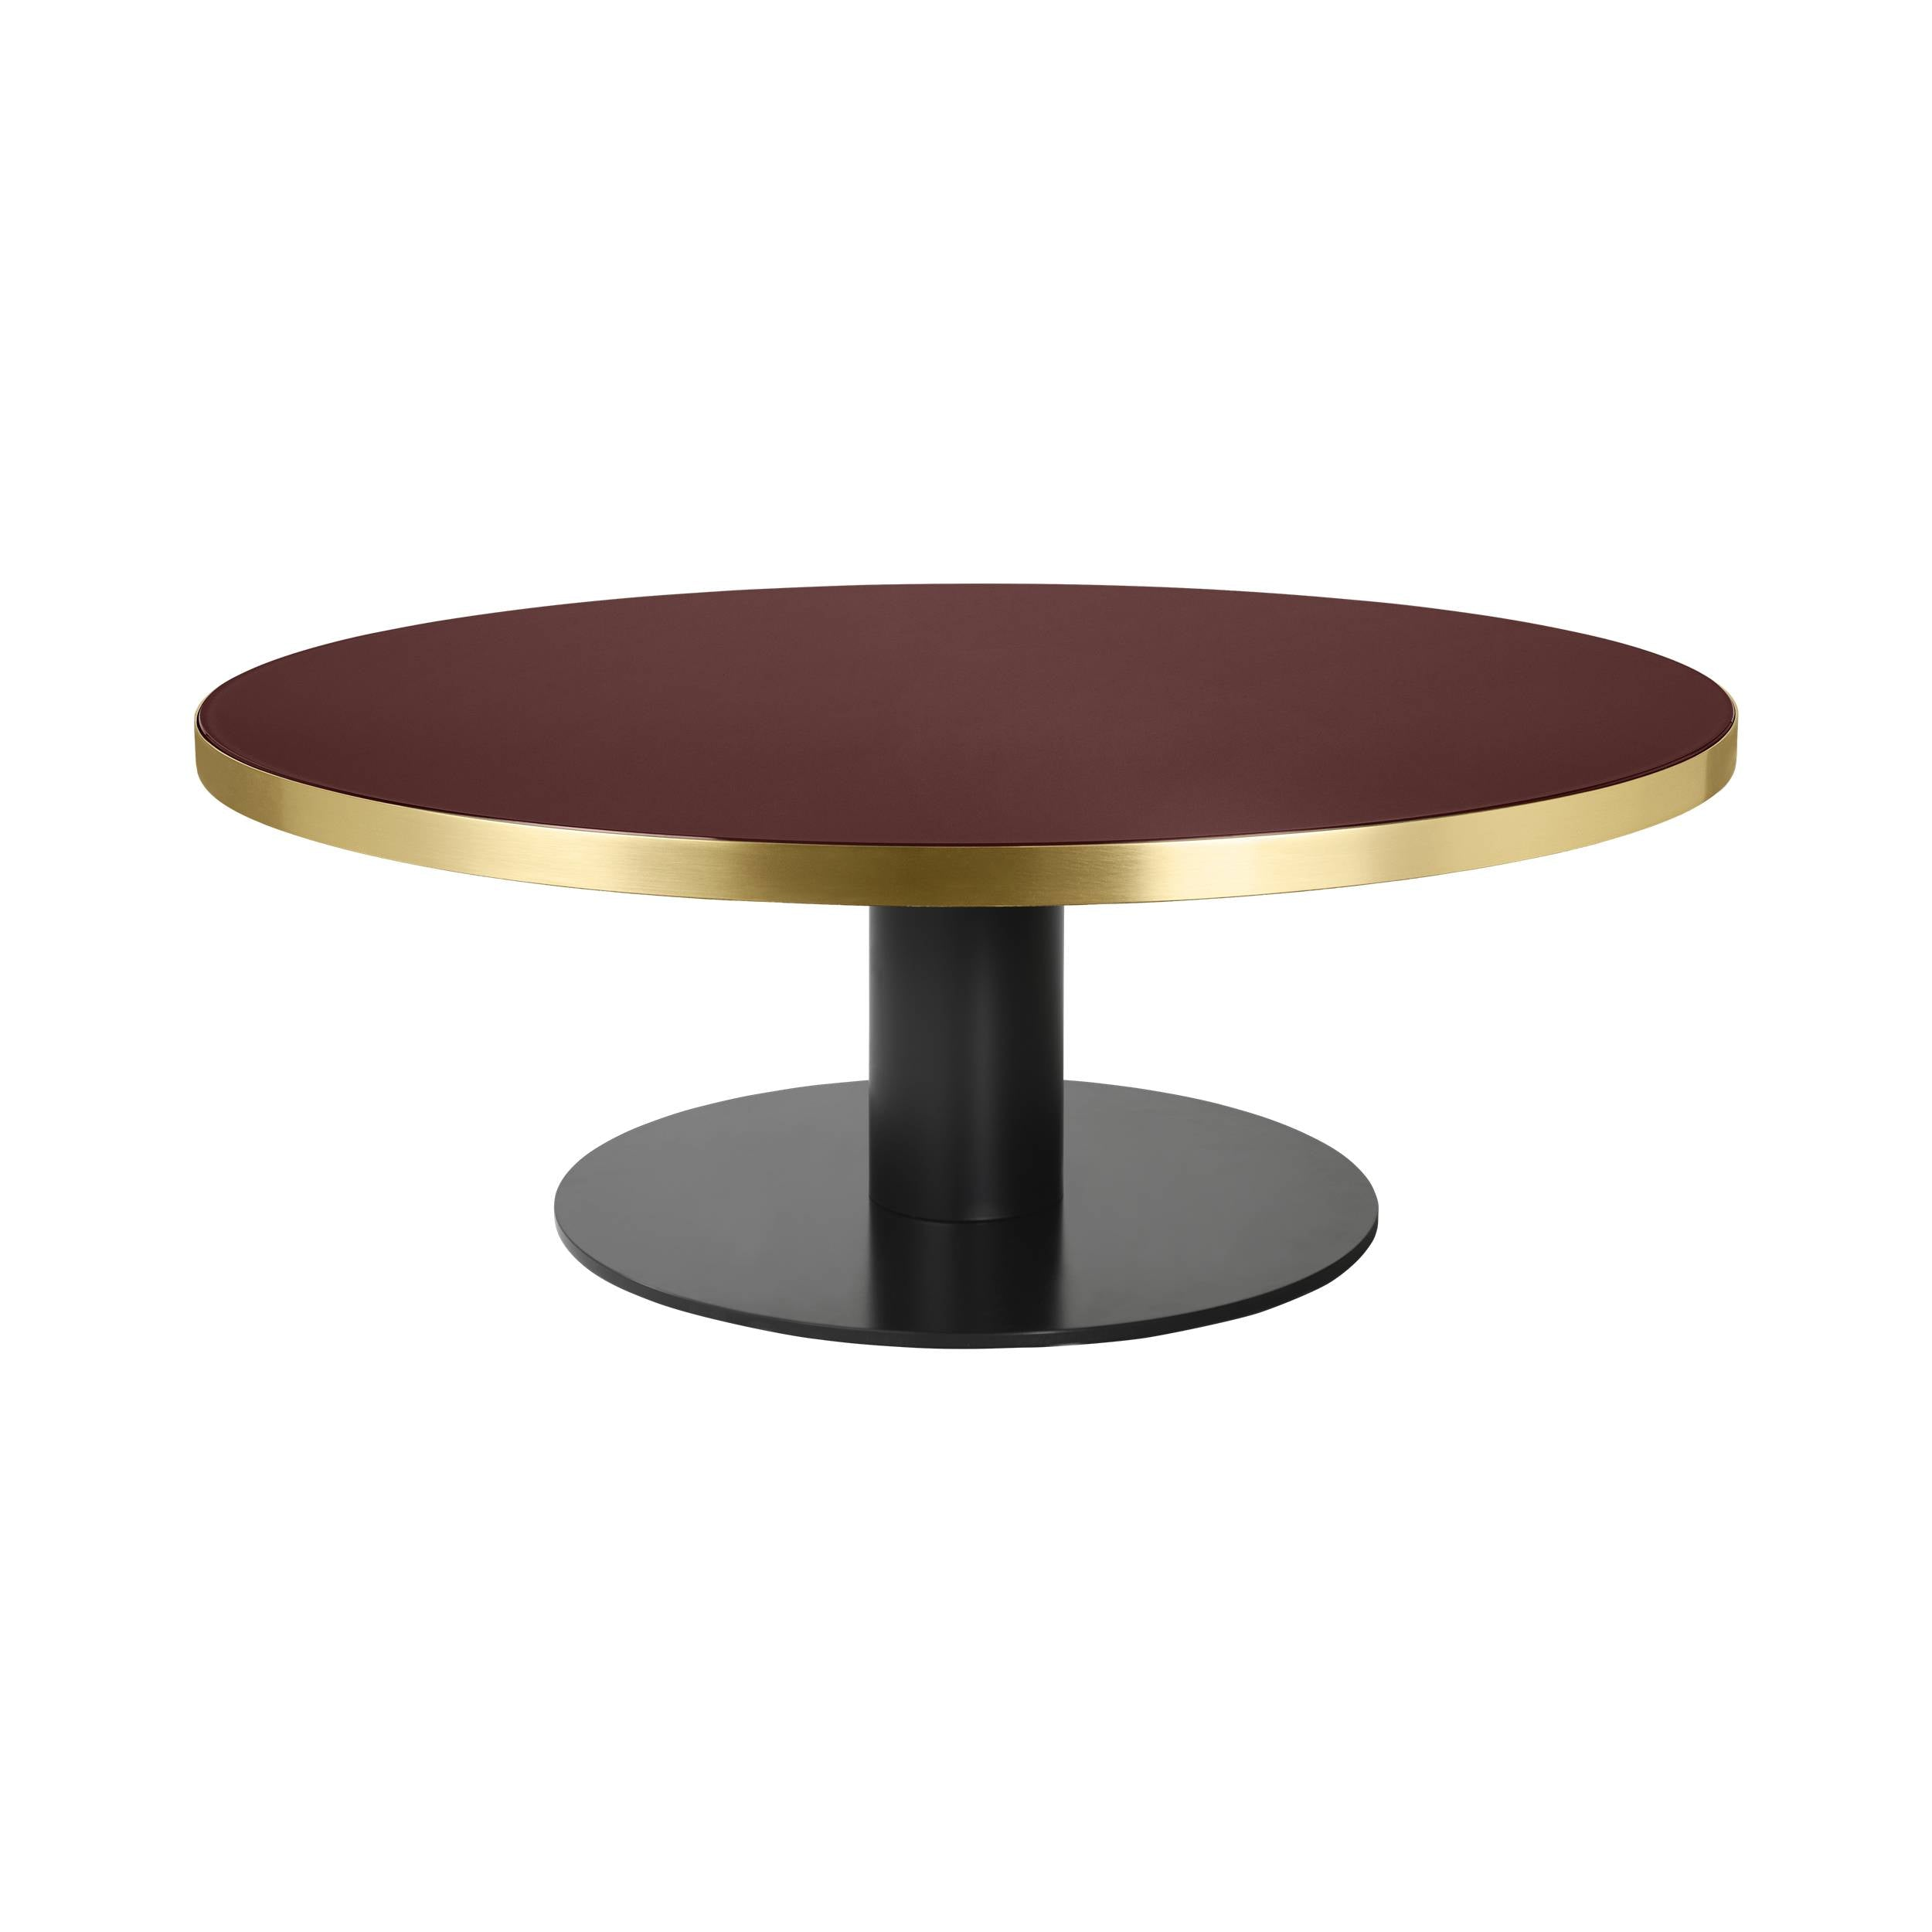 Gubi 2.0 Coffee Table: Glass Top + Medium + Black Base + Cherry Red